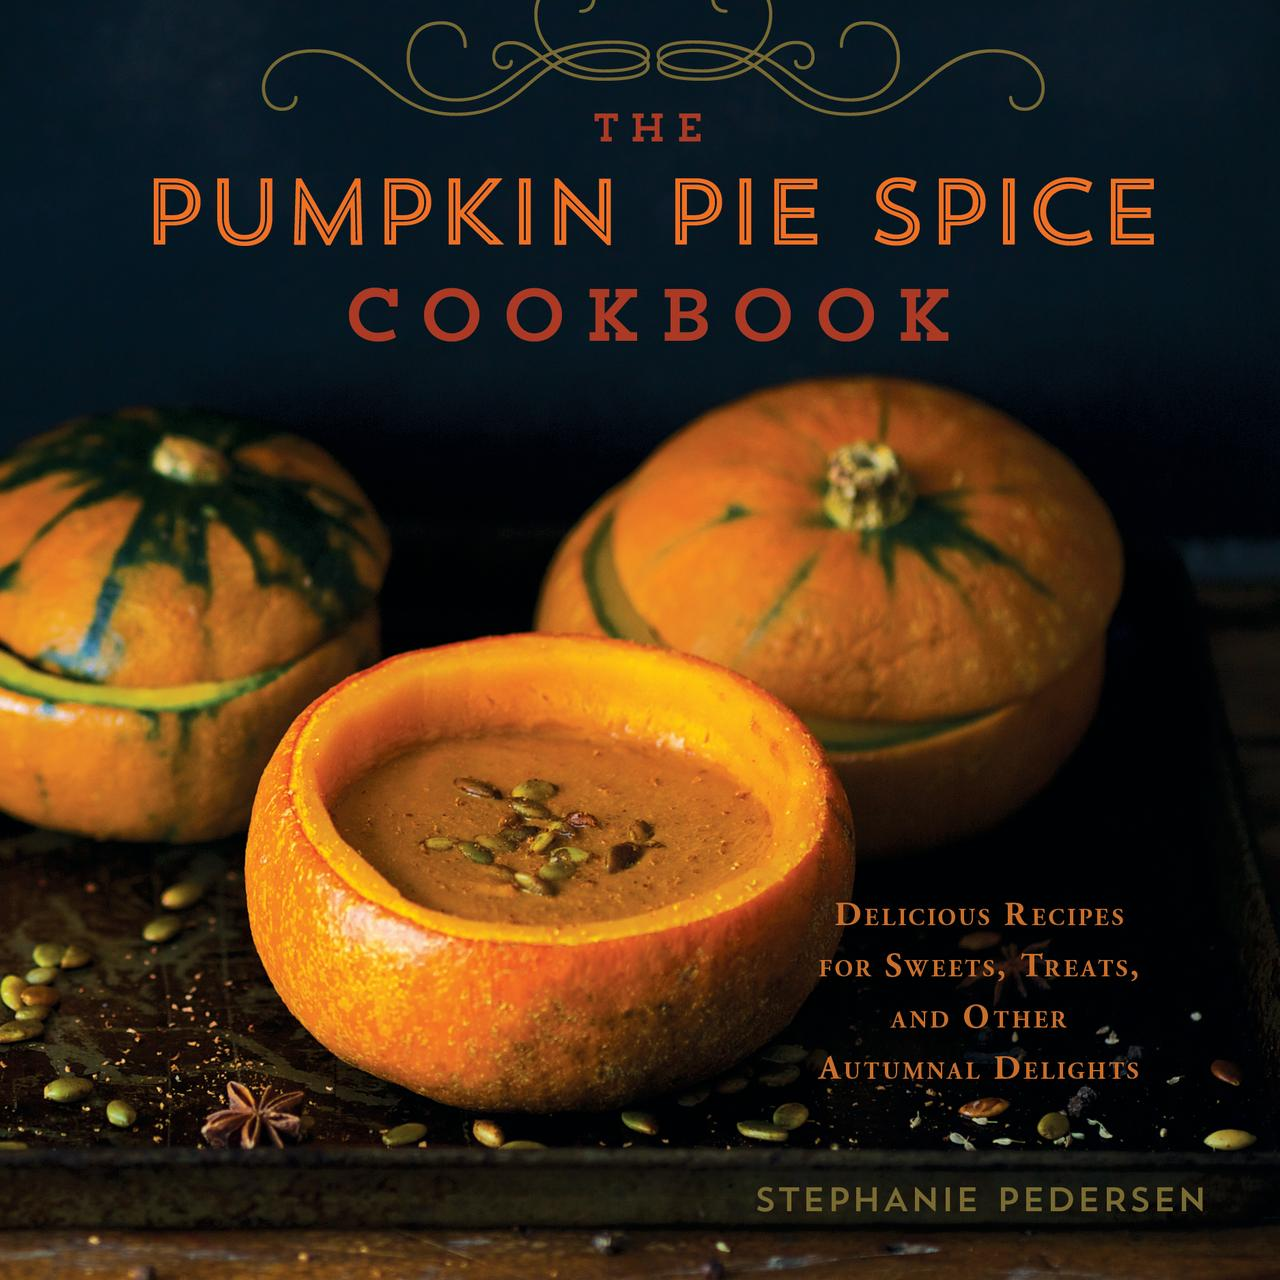 The Pumpkin Pie Spice Cookbook : Delicious Recipes for Sweets, Treats, and Other Autumnal Delights